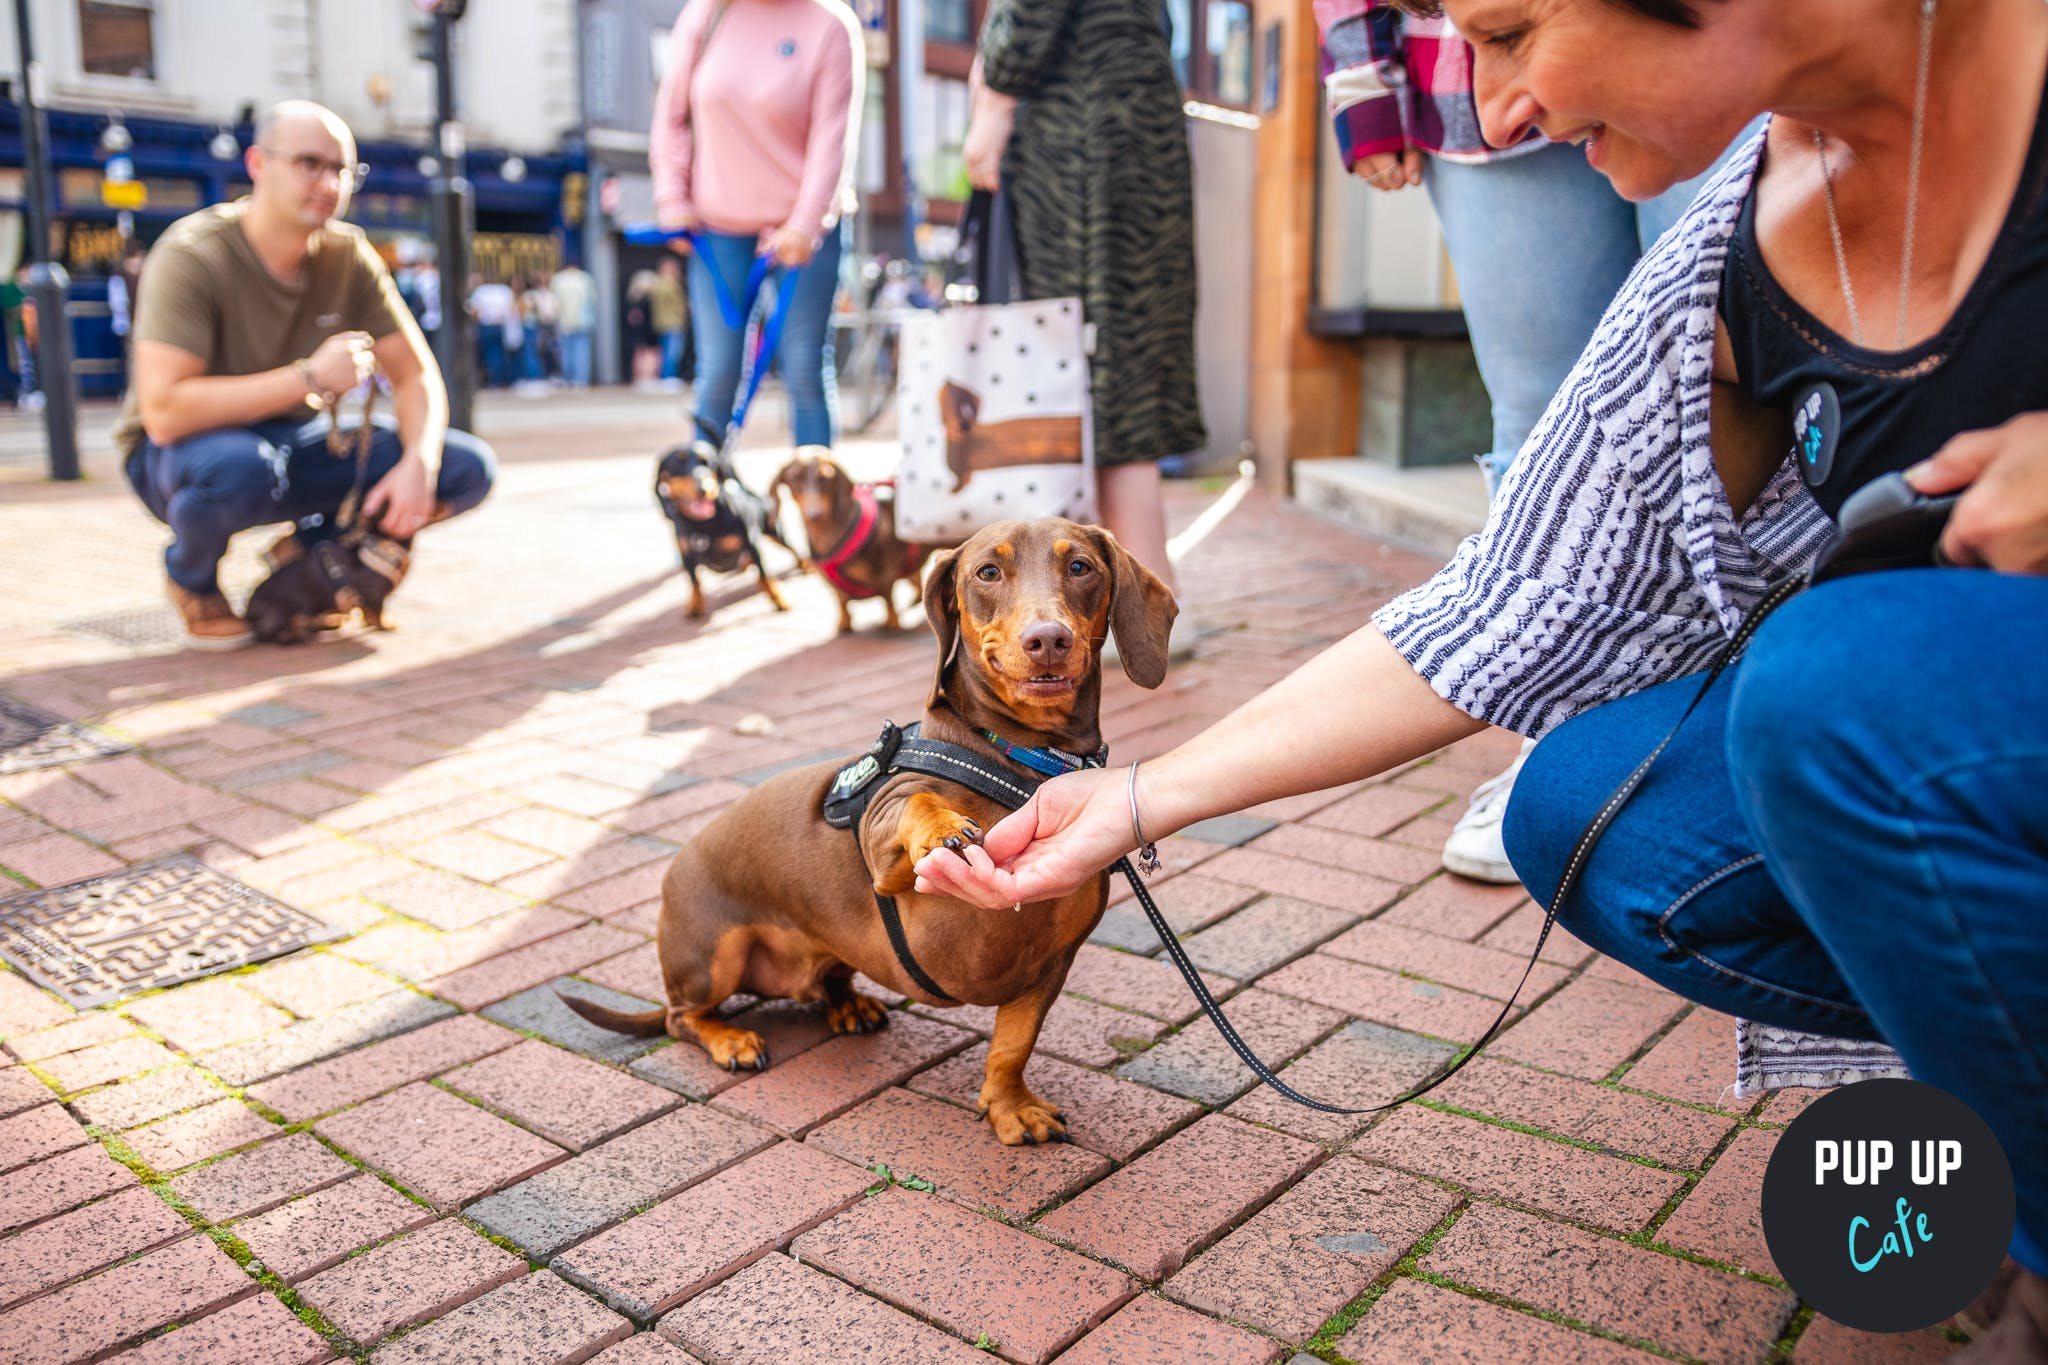 Pup Up Cafe™ brings 300+ Dachshunds to Glasgow bar!